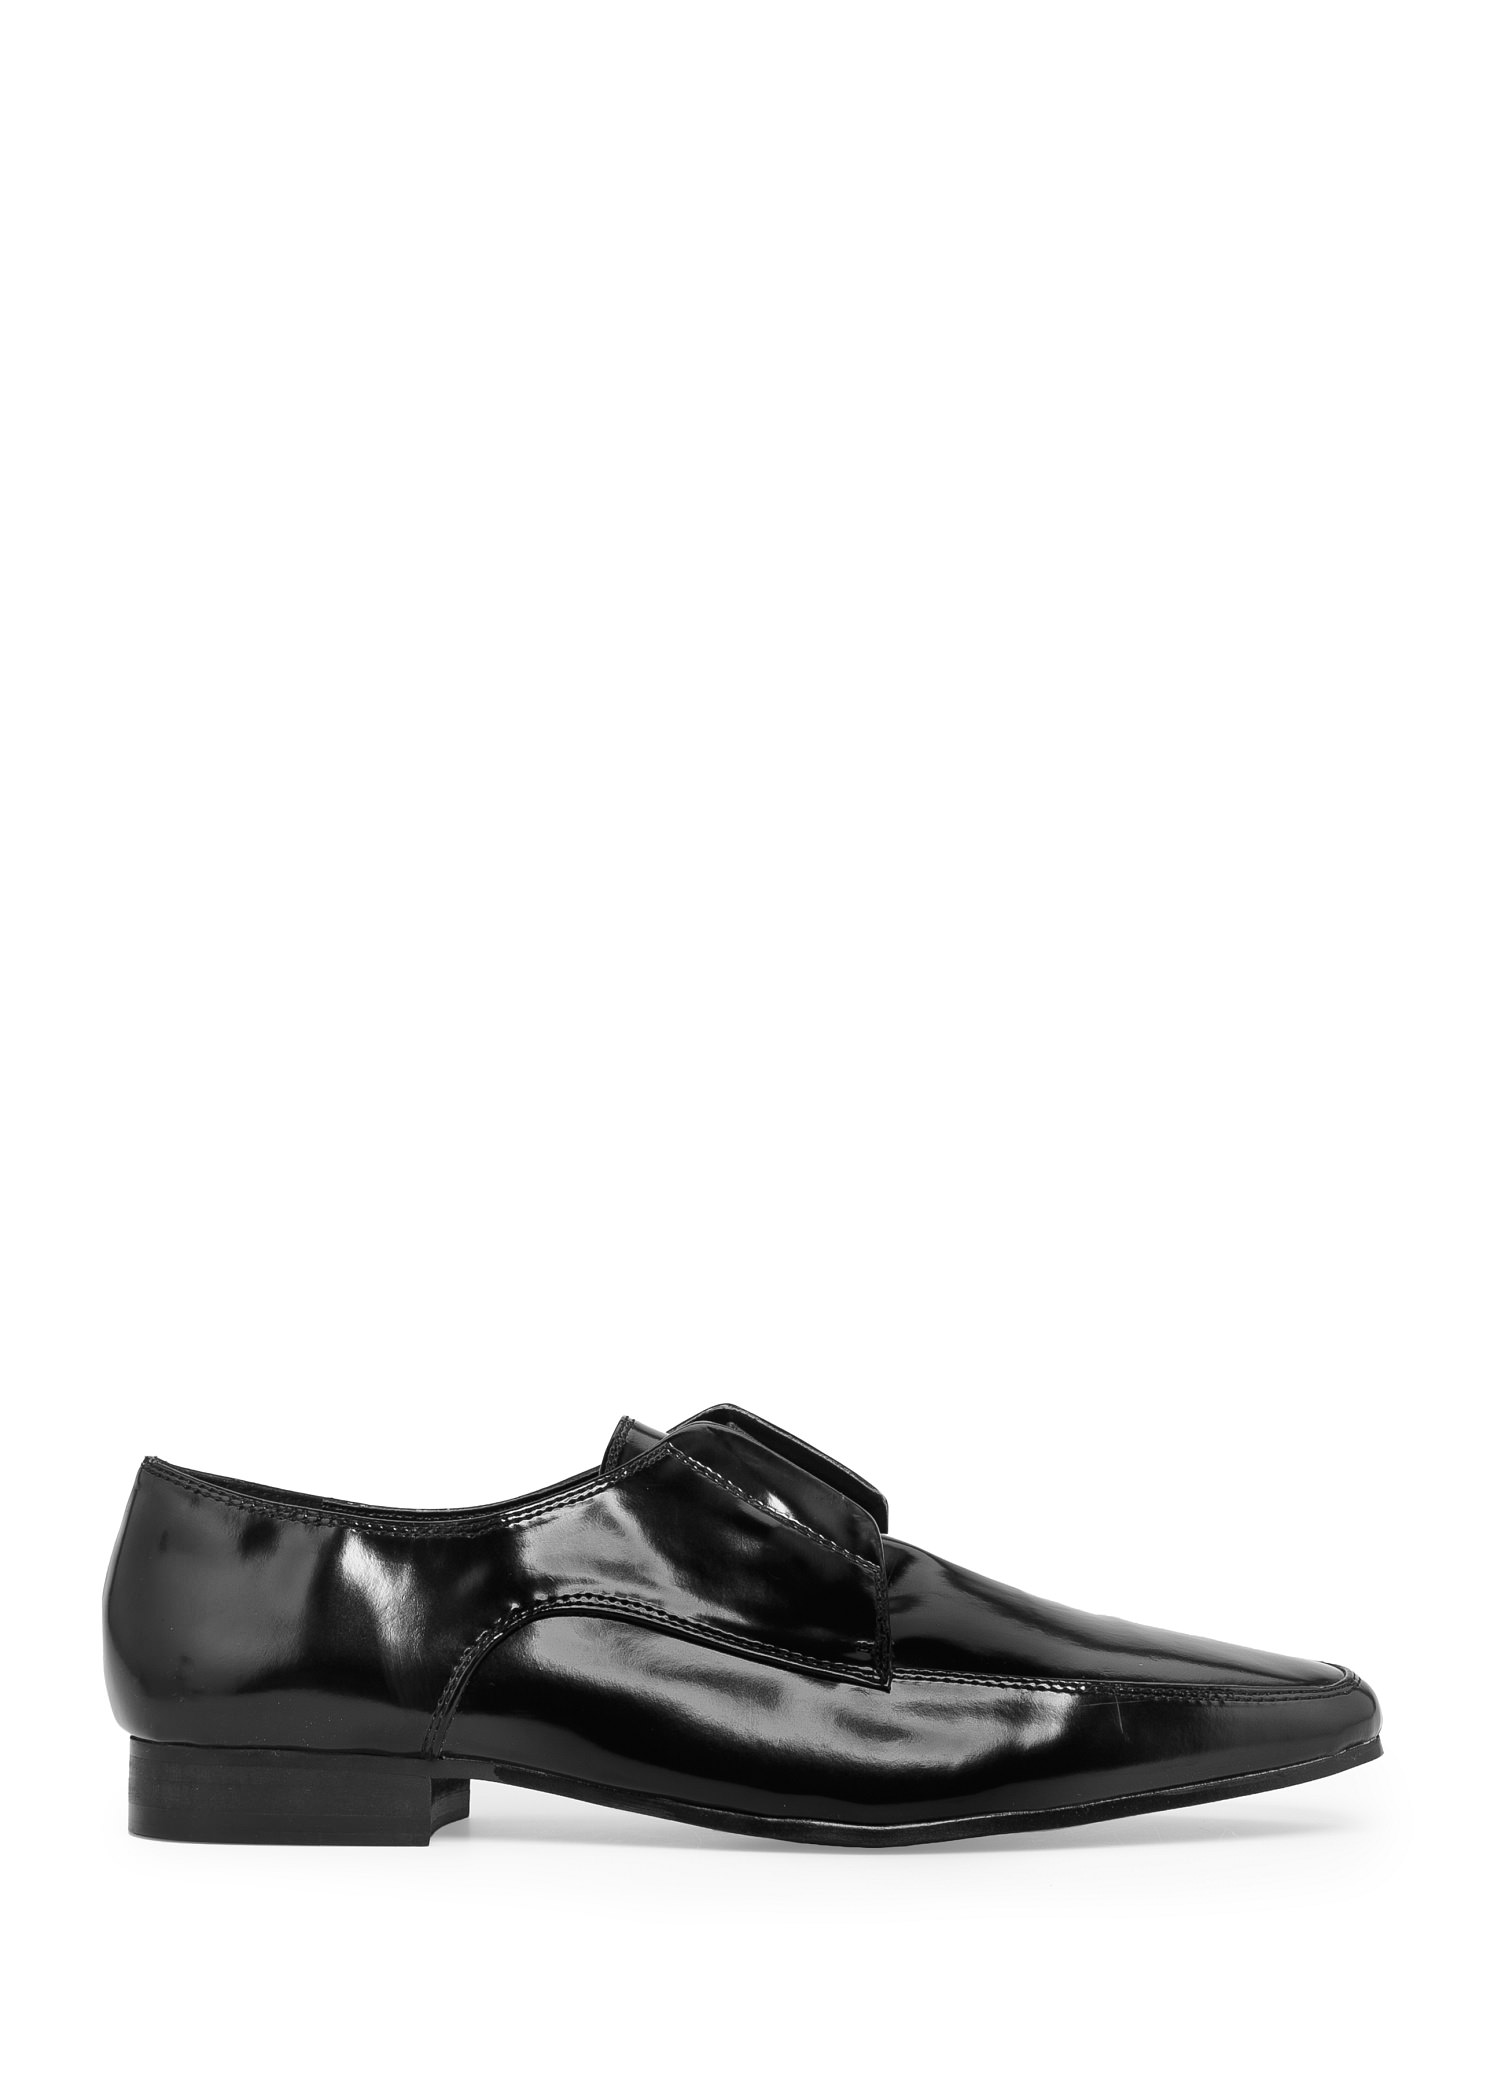 Penny loafers - Shoes for Women | MANGO